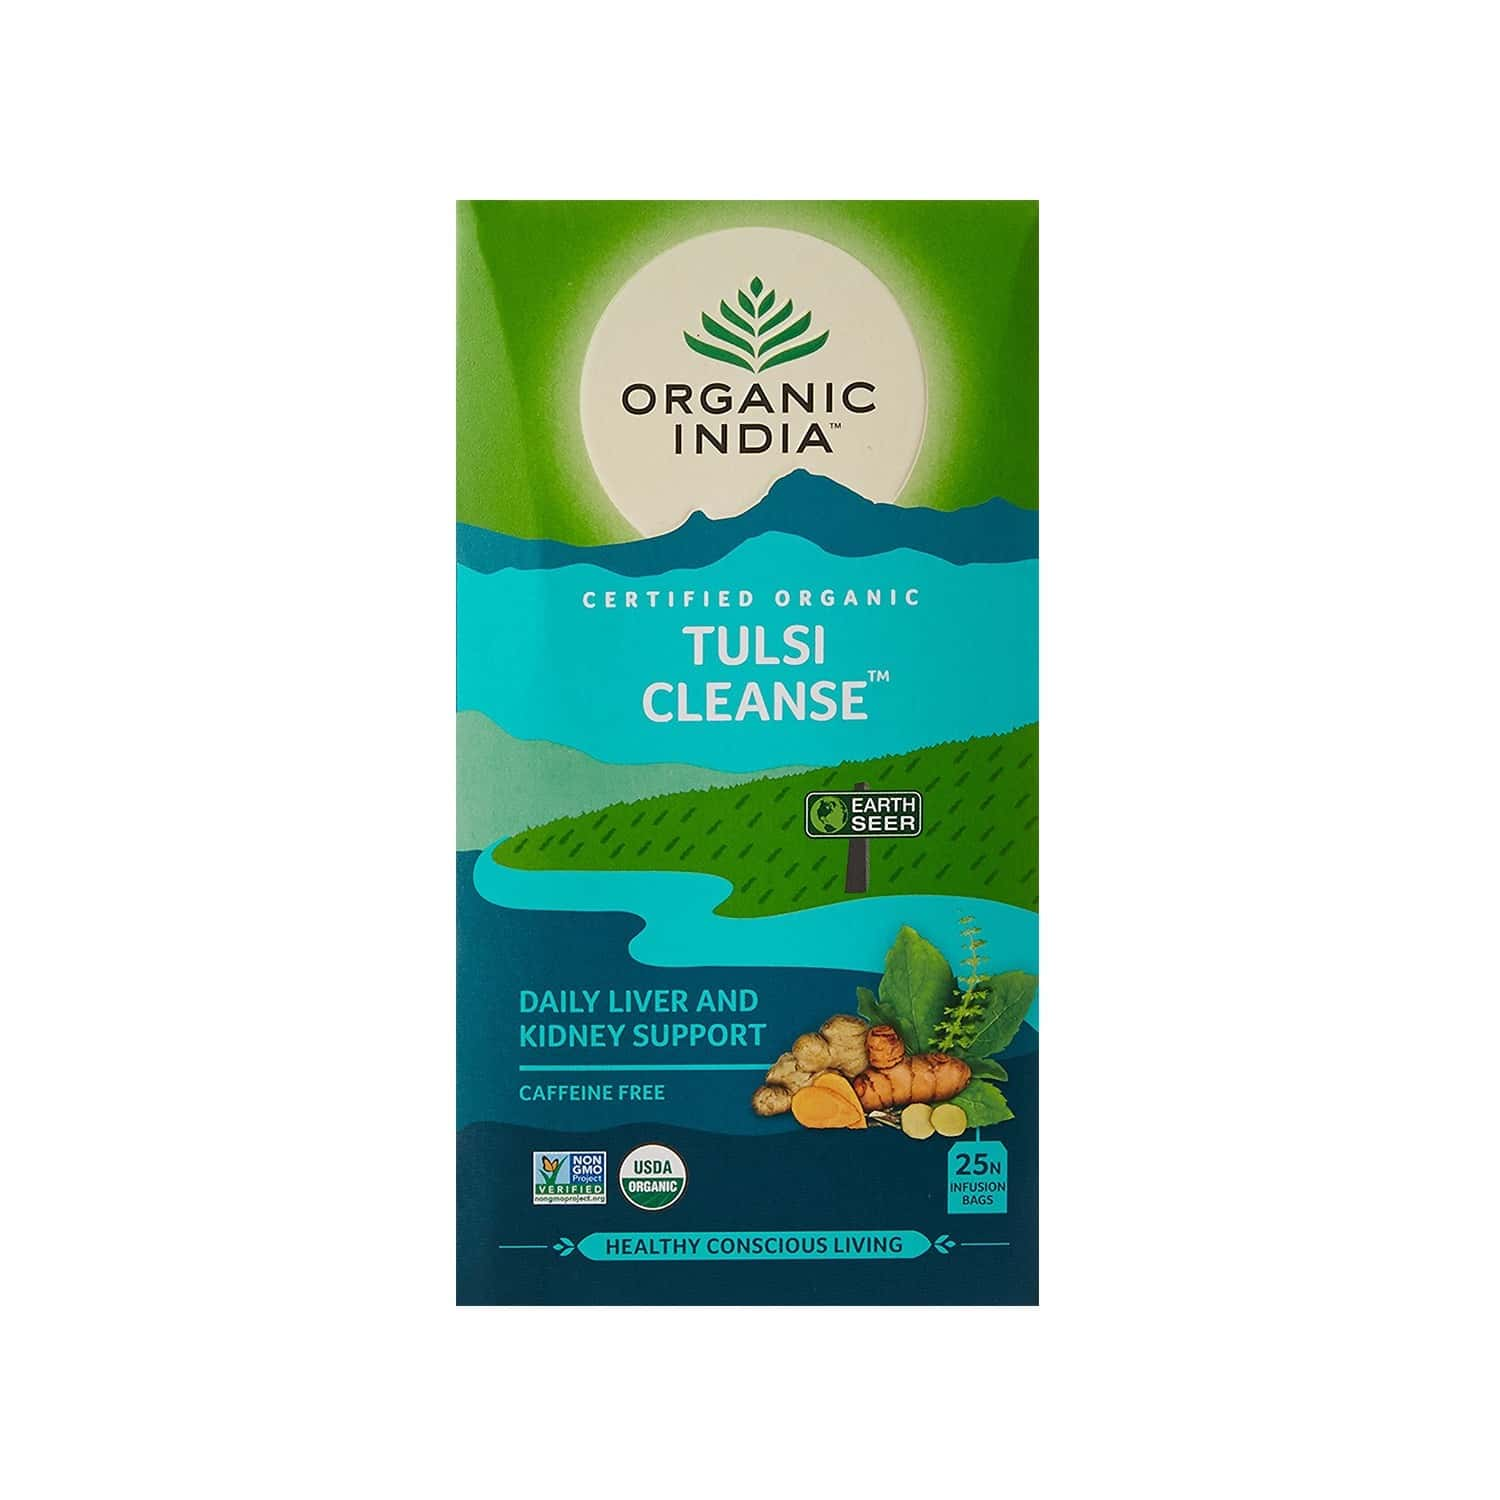 Organic India Tulsi Cleanse Tea Bag 25's